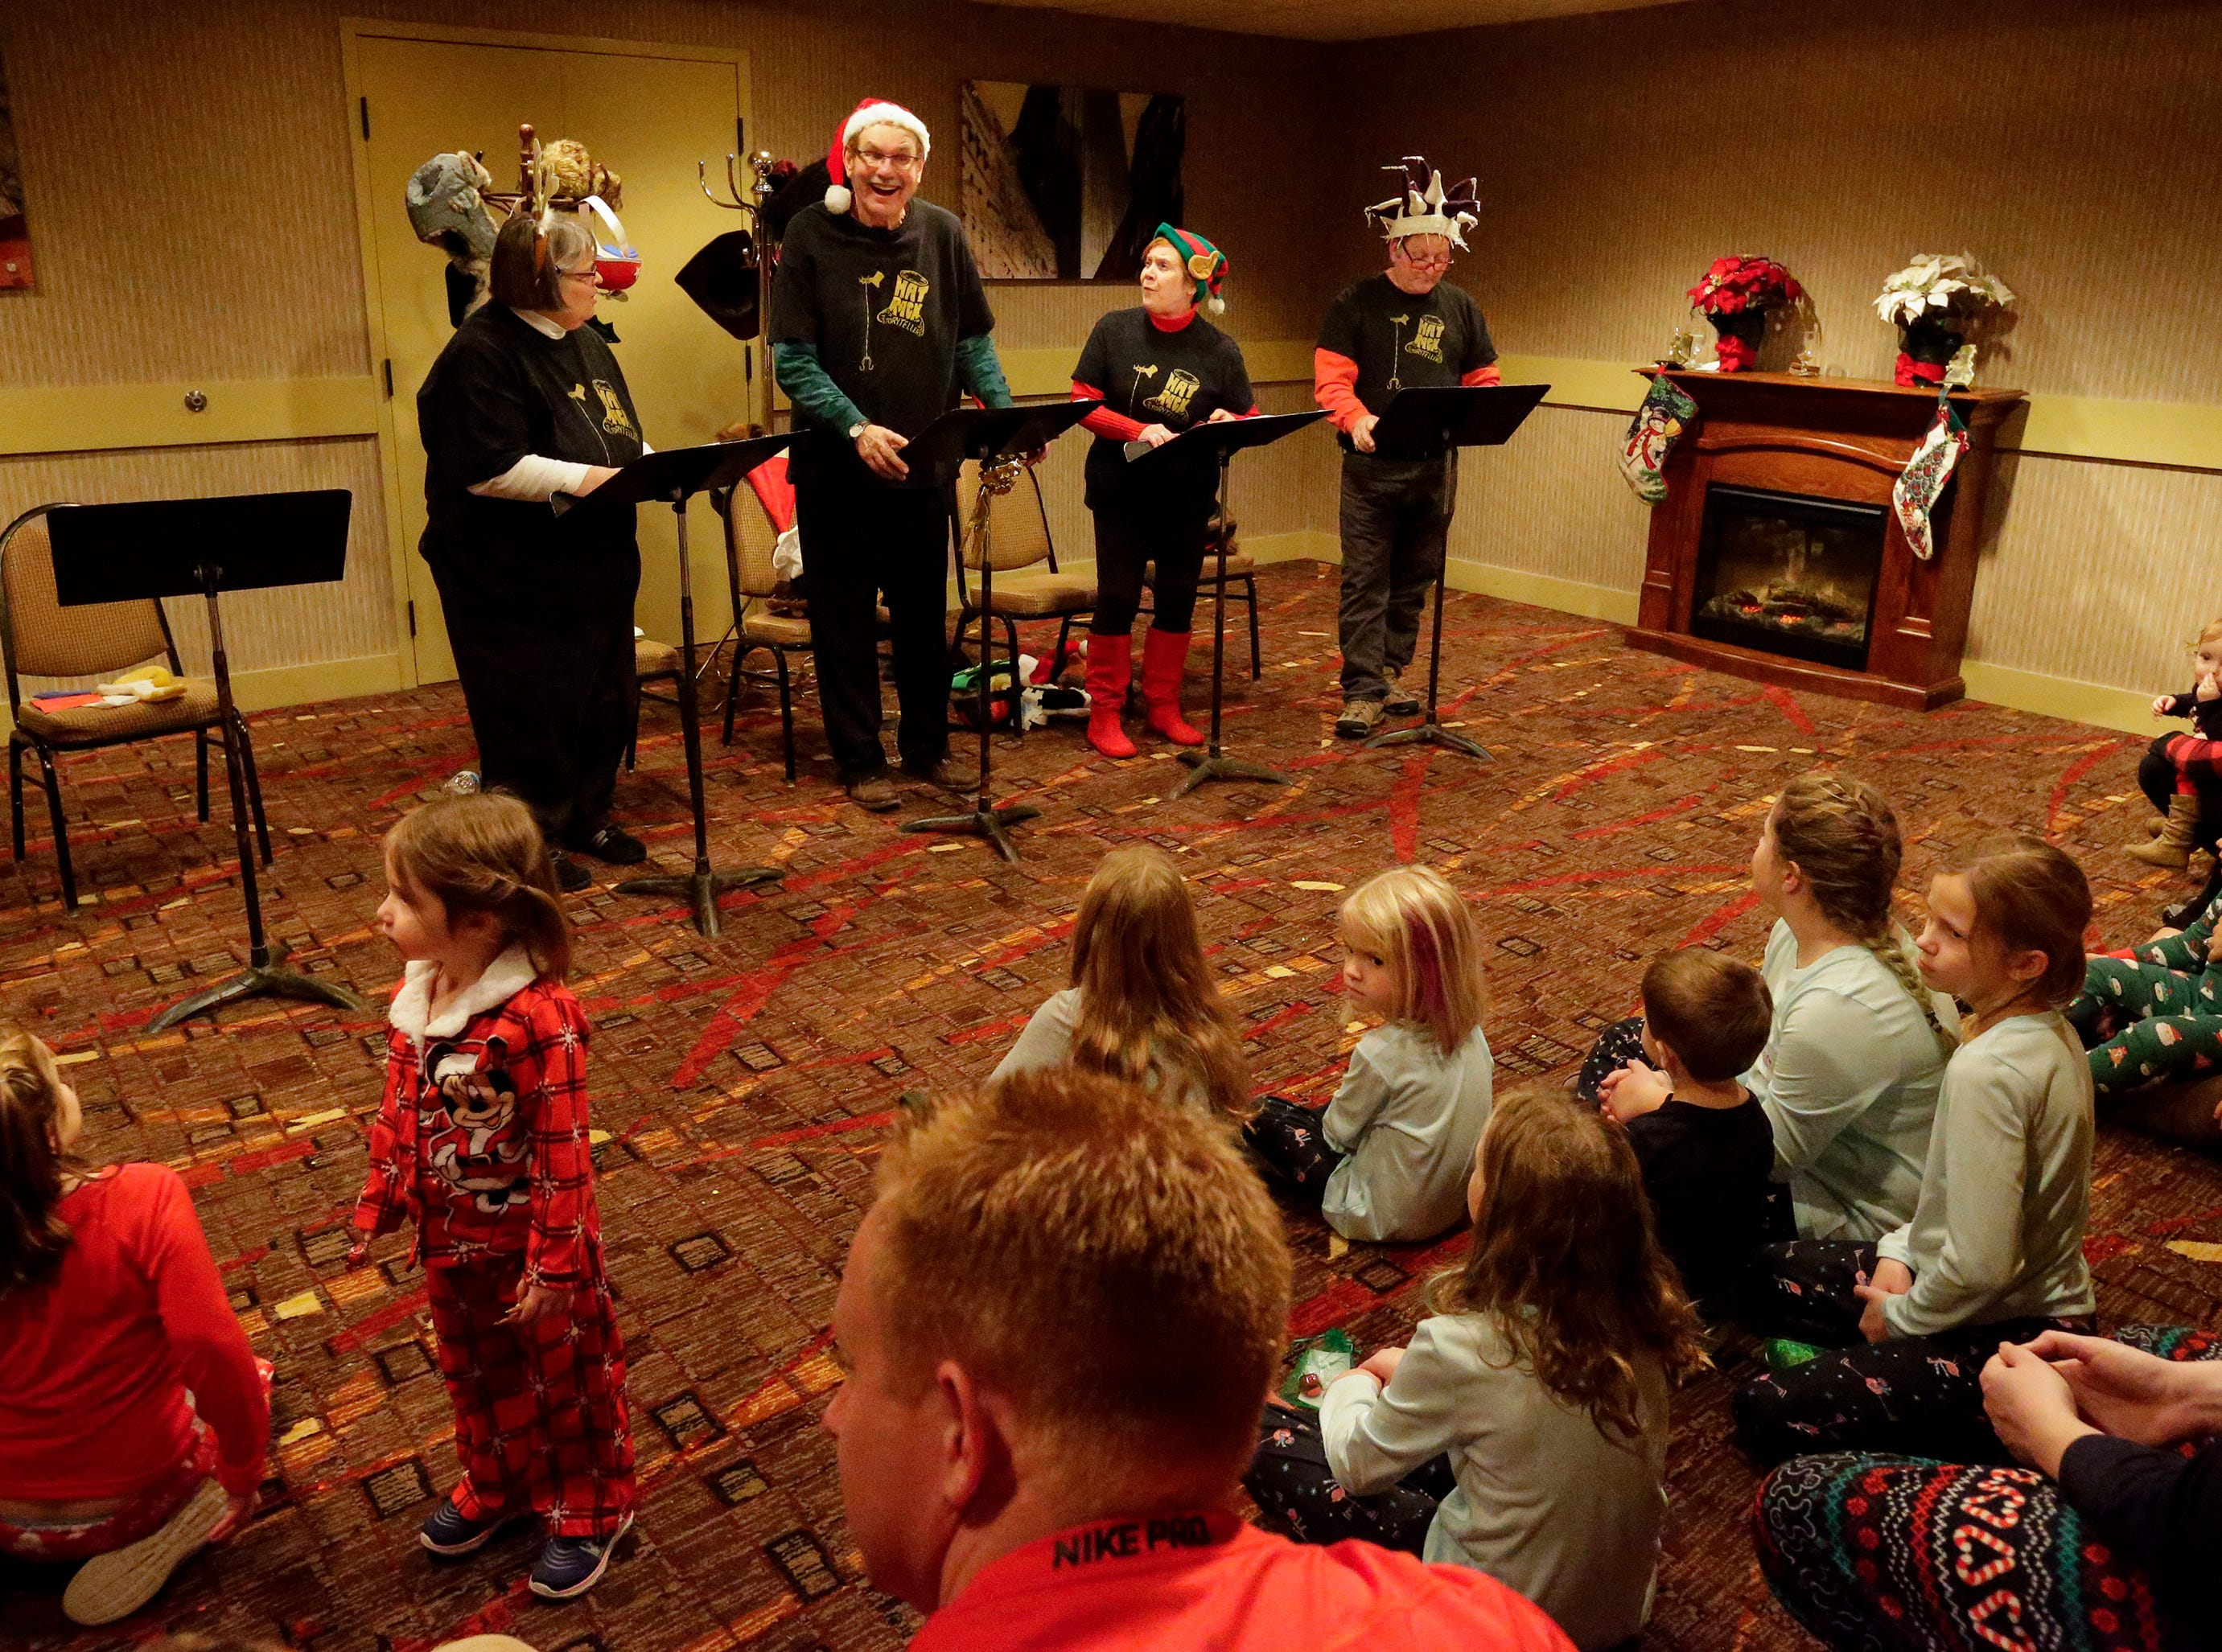 The Hat Rack Storytellers read a story to the children at Santa's North Pole at the Holiday Inn Saturday, December 8, 2018, in Manitowoc, Wis. Joshua Clark/USA TODAY NETWORK-Wisconsin